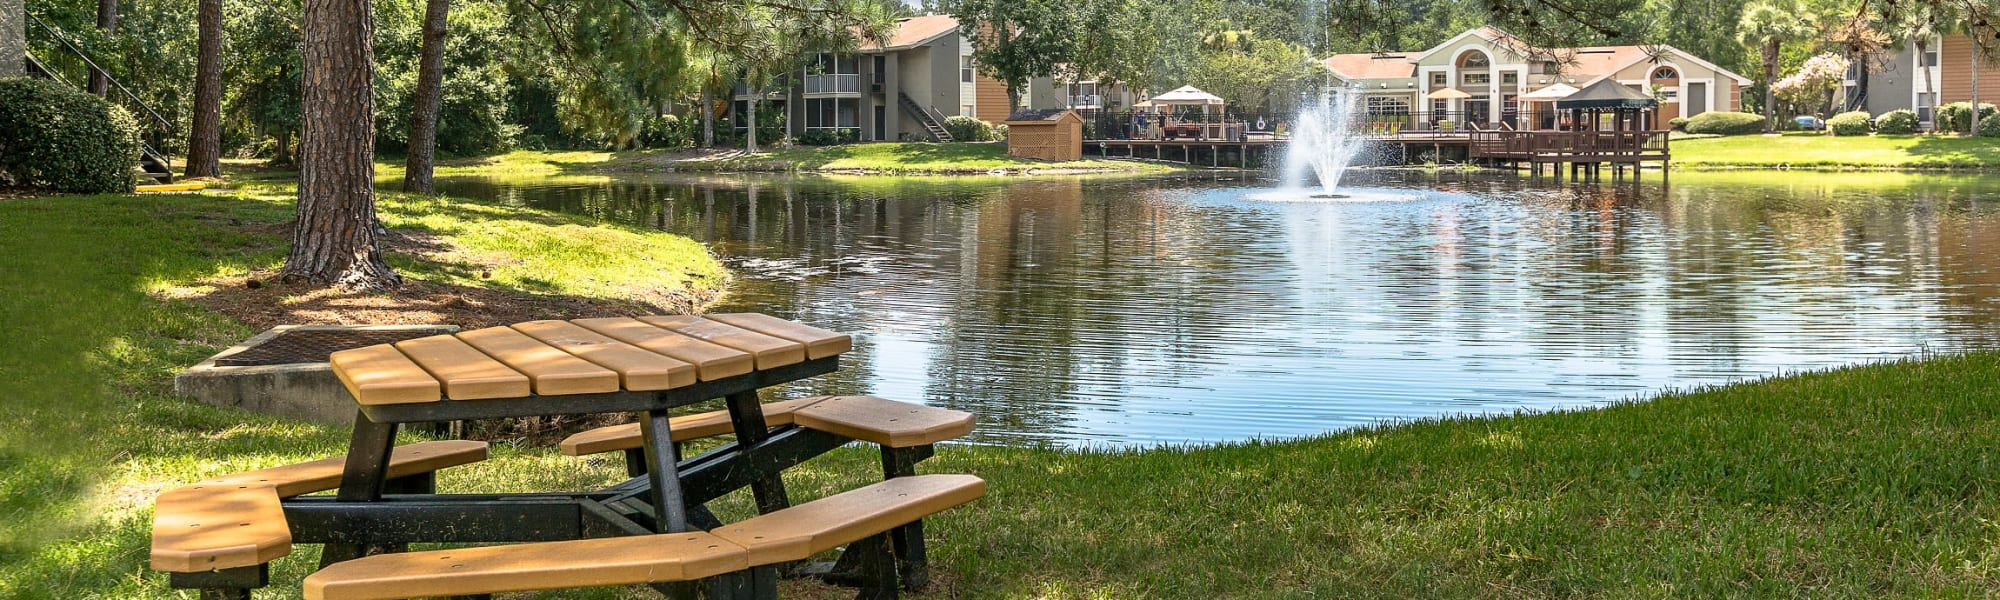 Amenities at The Vue at Baymeadows Apartment Homes in Jacksonville, Florida